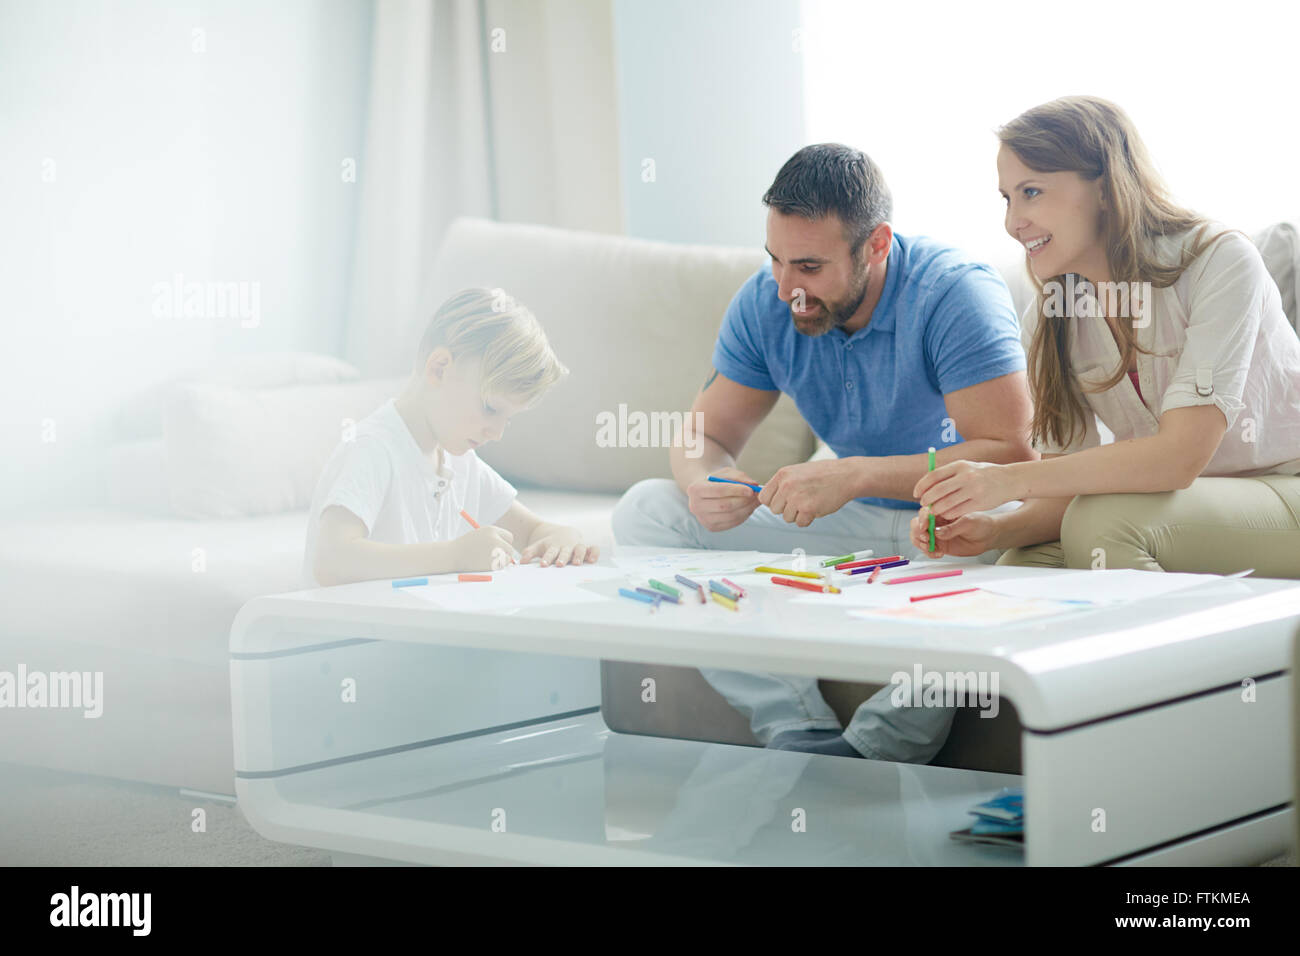 Spending time at home - Stock Image